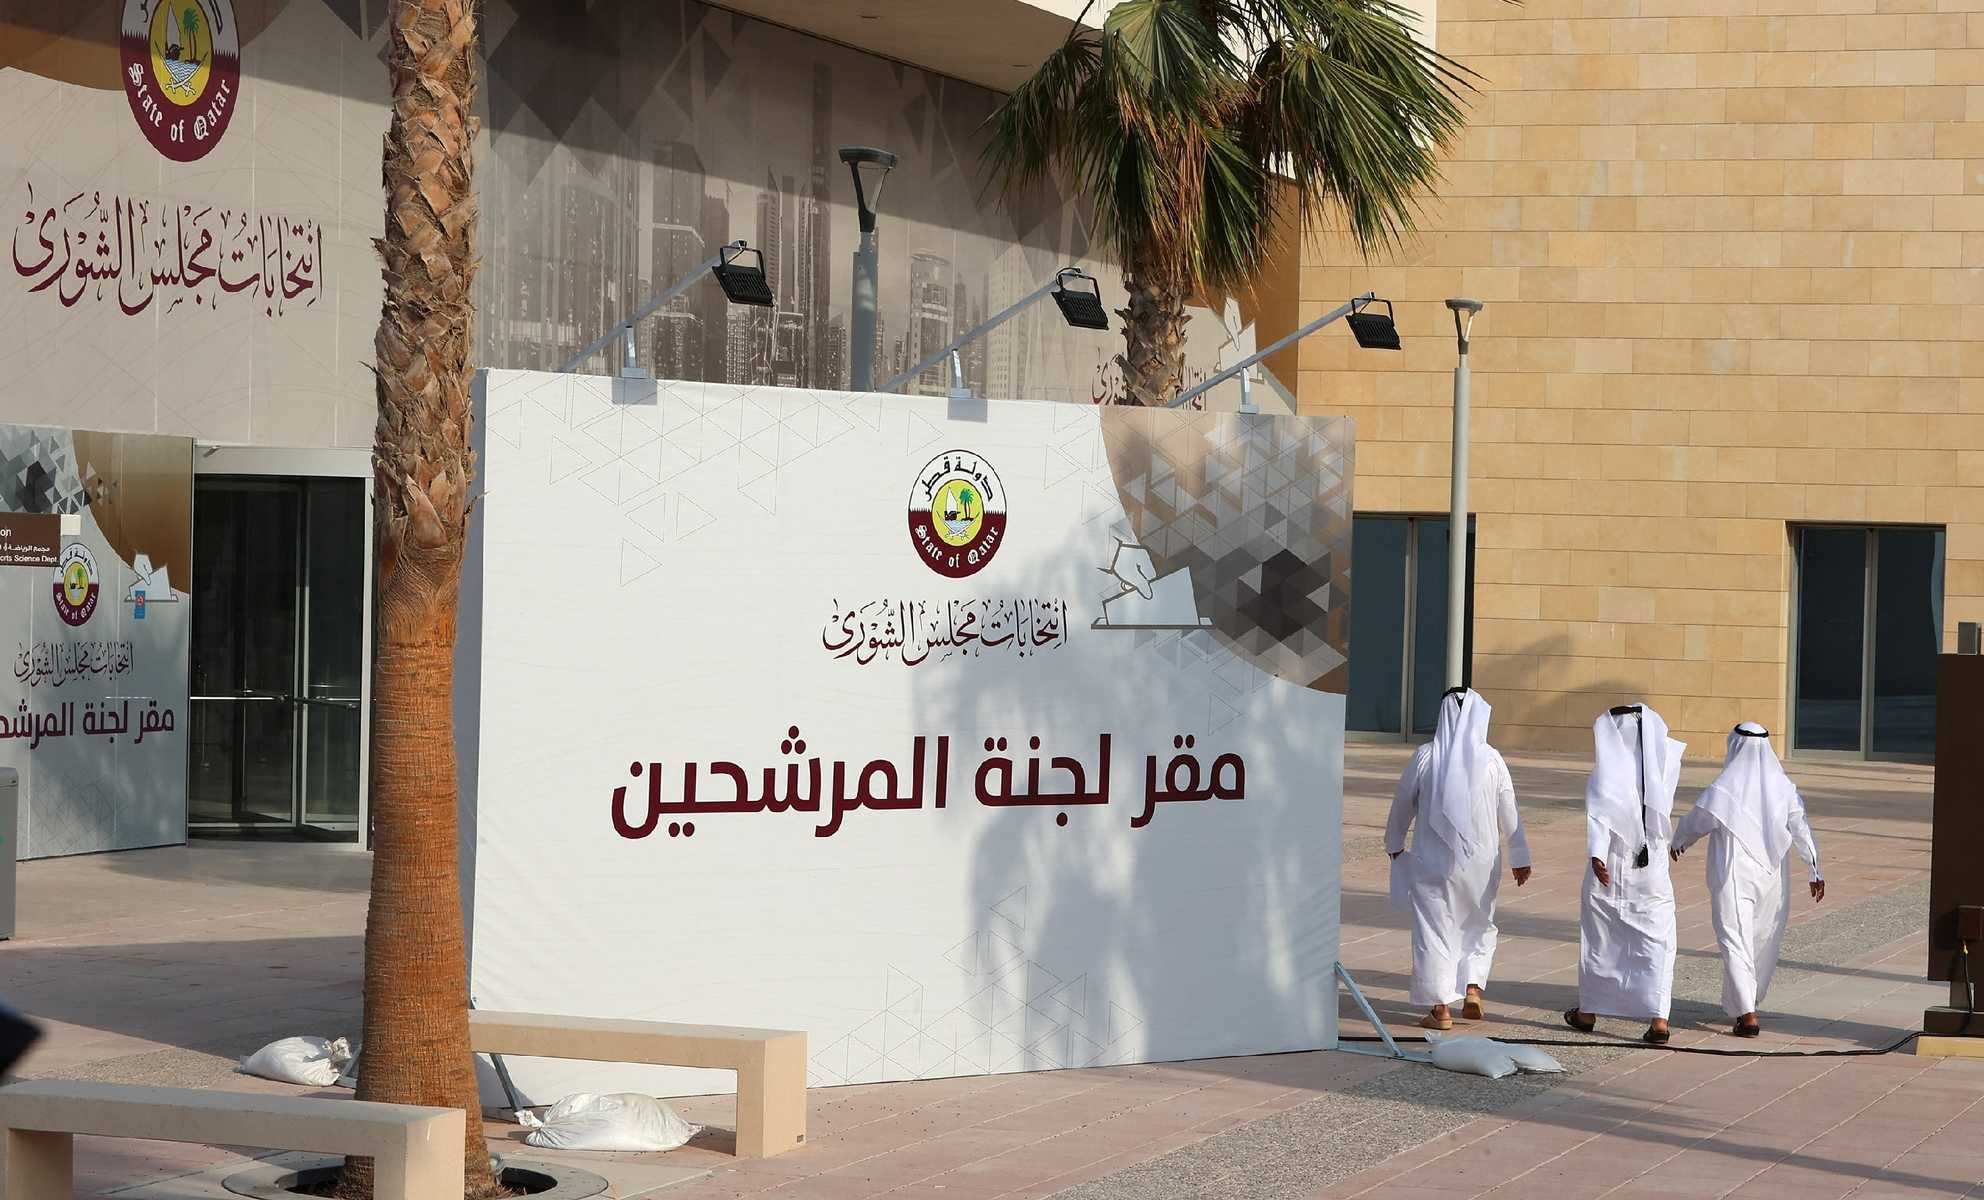 Arab, Global Recognition of Shura Council Elections in Qatar